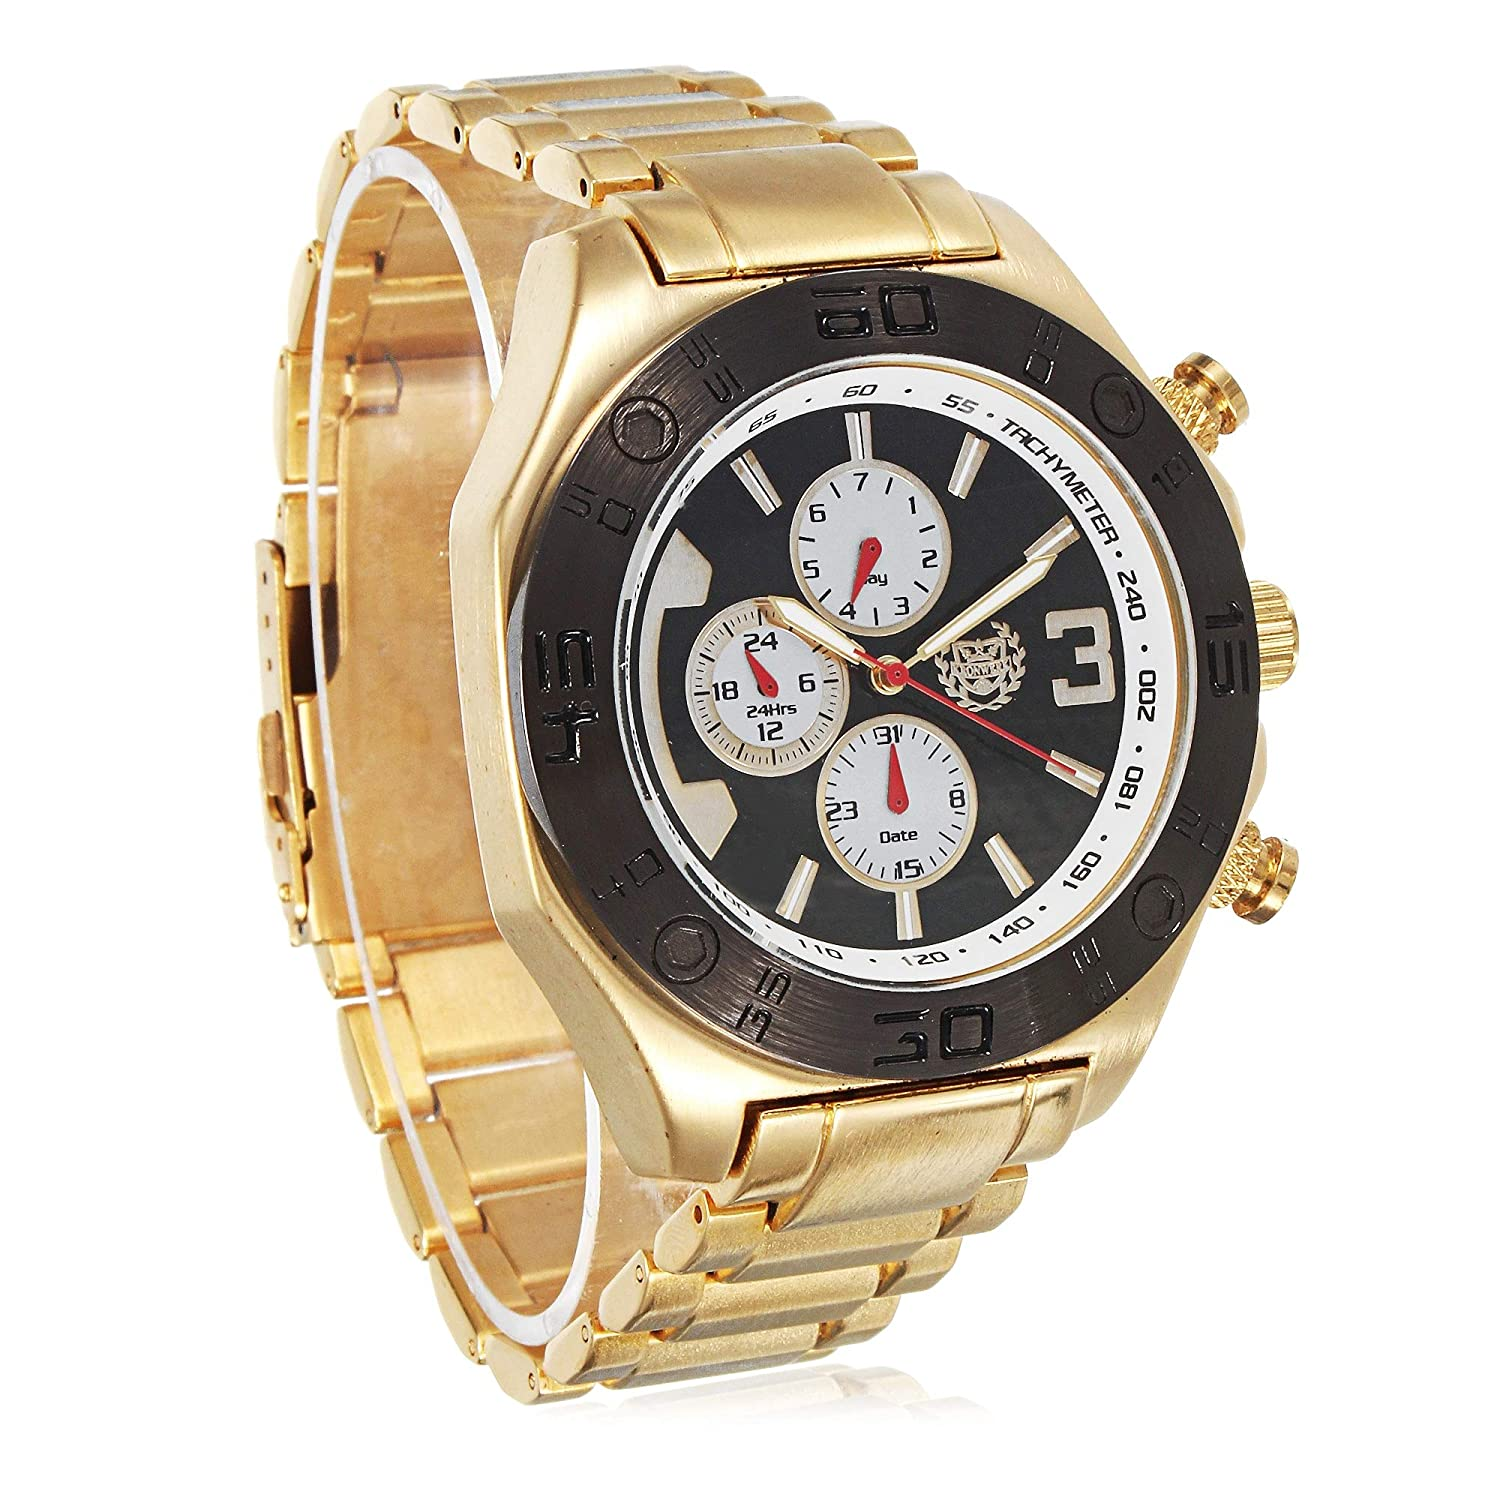 Amazon.com: Gold Watch for Men Metal Band Big Face 50mm Business Work Wacht Reloj Oro y Negro para Hombre Acero Inoxidable by ShoppeWatch: Watches